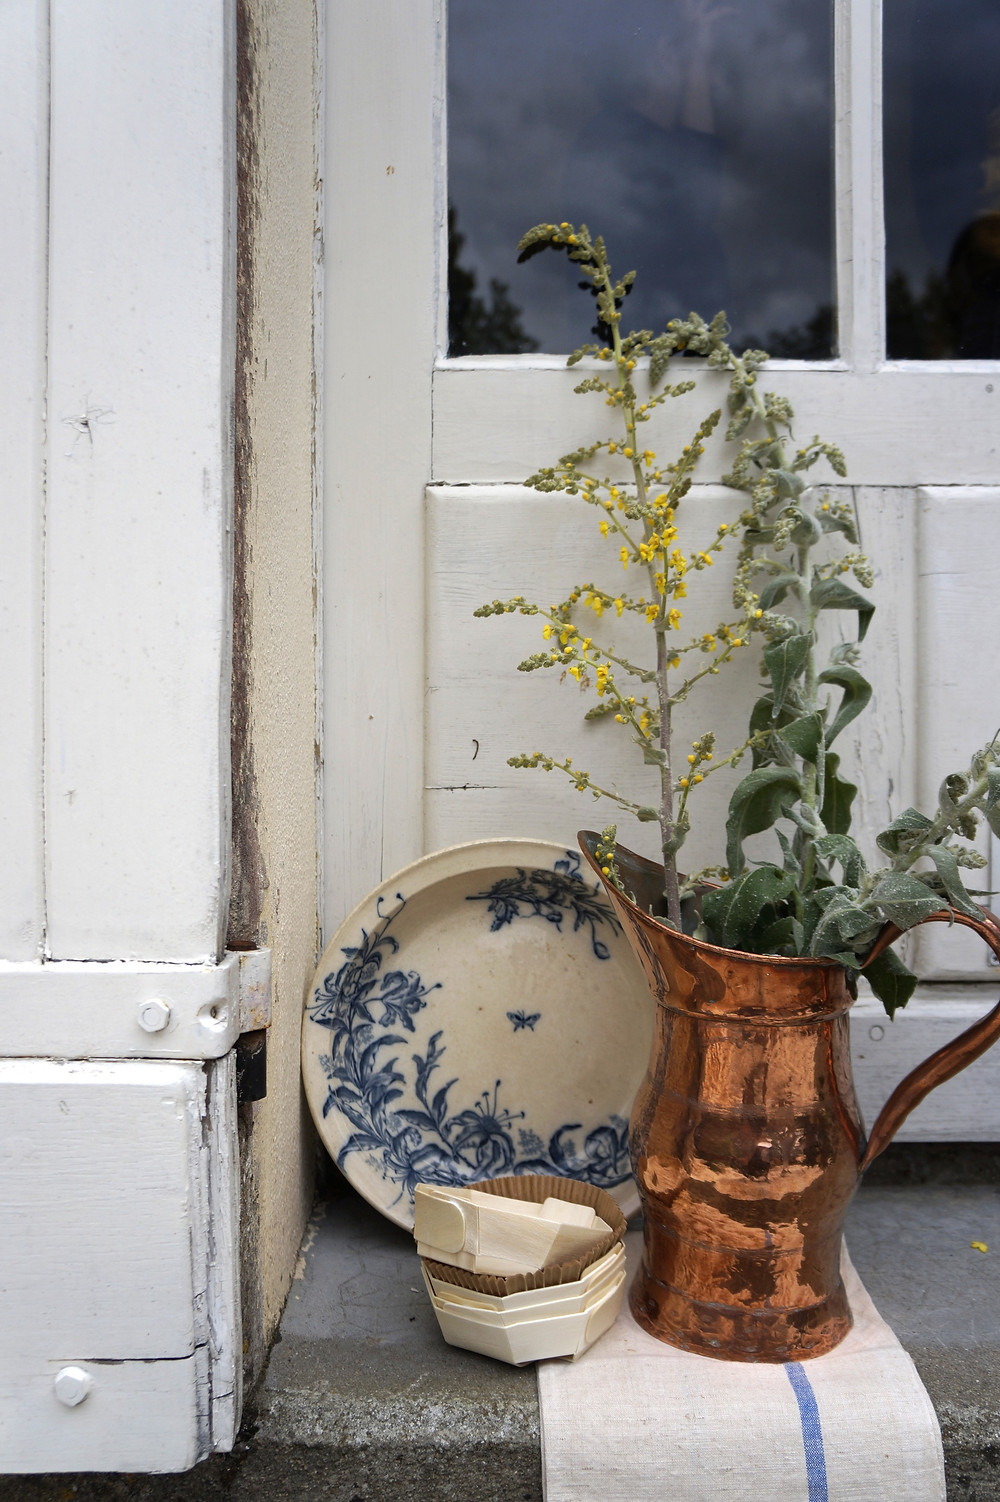 styling and photographing - copper pitche, ceramic bowl, wooden food containers and plants